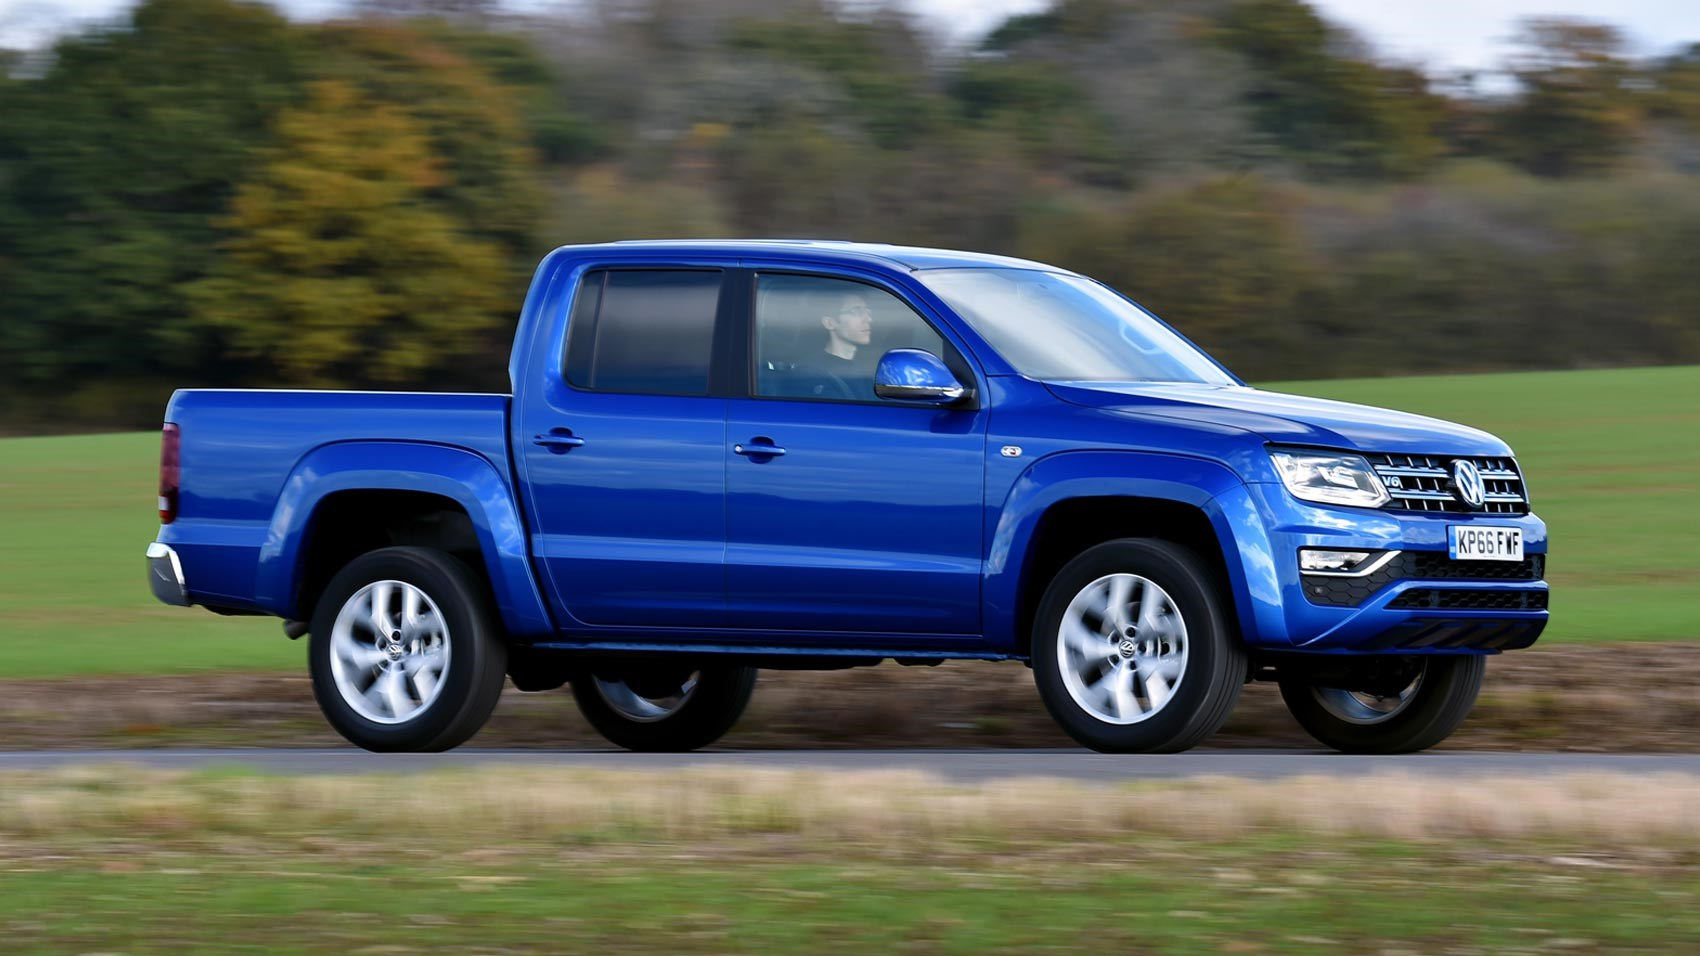 volkswagen amarok v6 aventura 4x4 2017 review car magazine. Black Bedroom Furniture Sets. Home Design Ideas